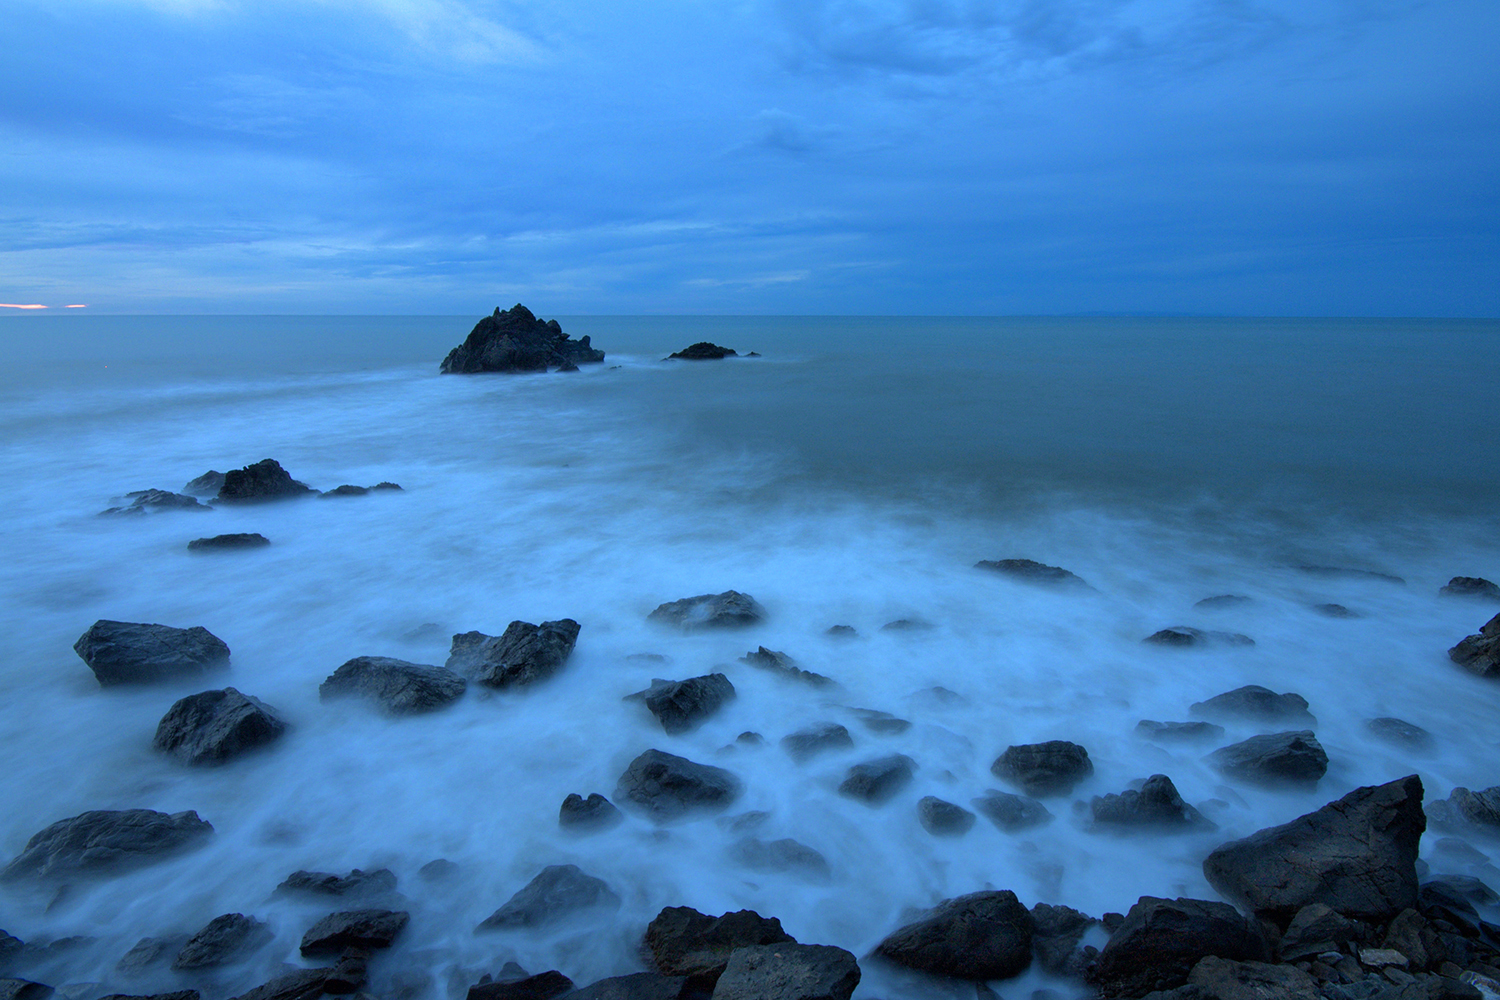 2 - 3 Tips for Blue Hour Photography